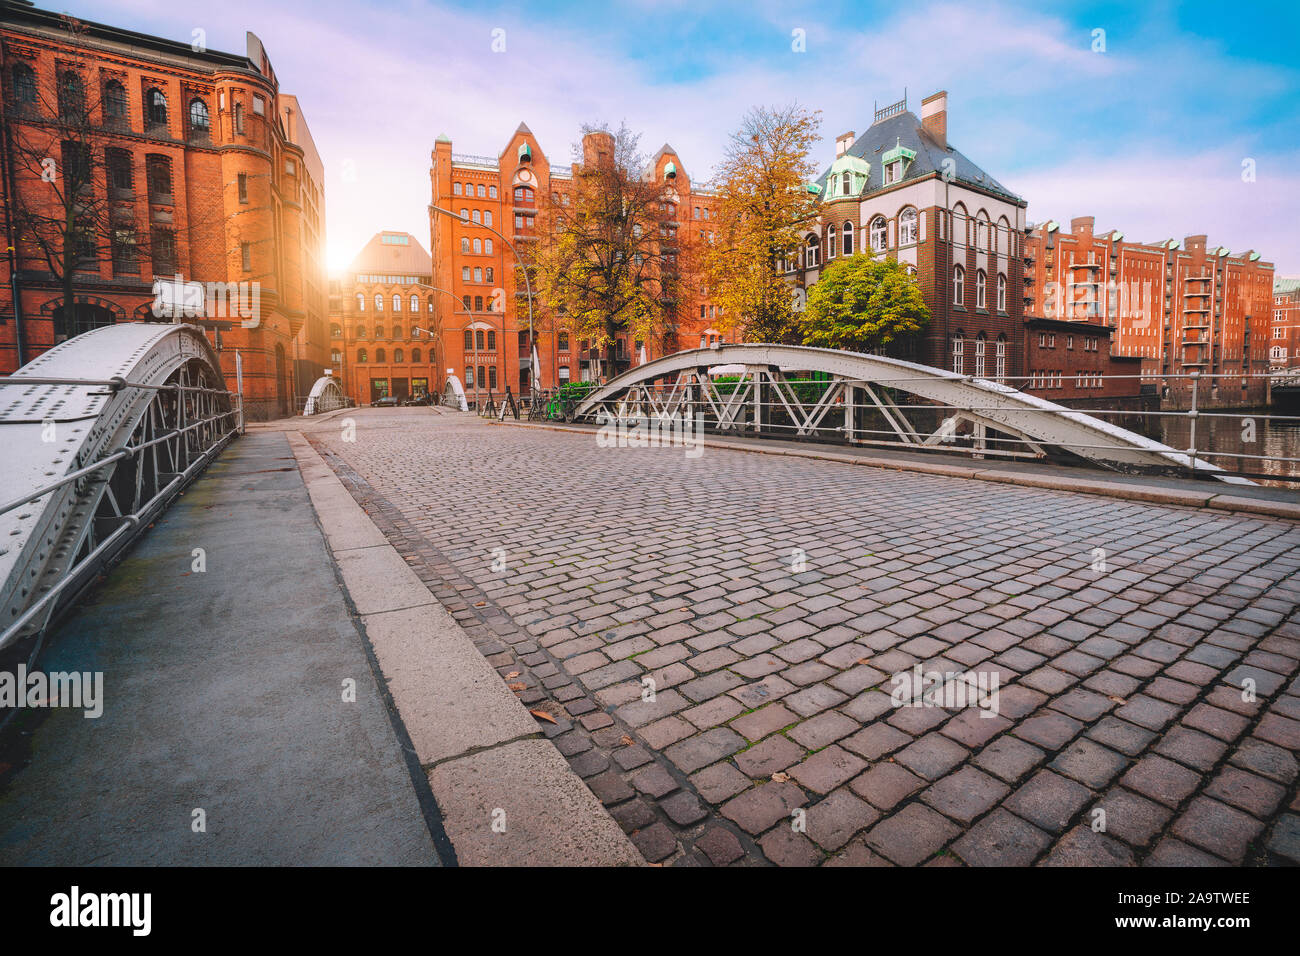 Arch bridge over canals with cobbled road in the Speicherstadt of Hamburg, Germany, Europe. Historical red brick building lit by golden sunset light n Stock Photo